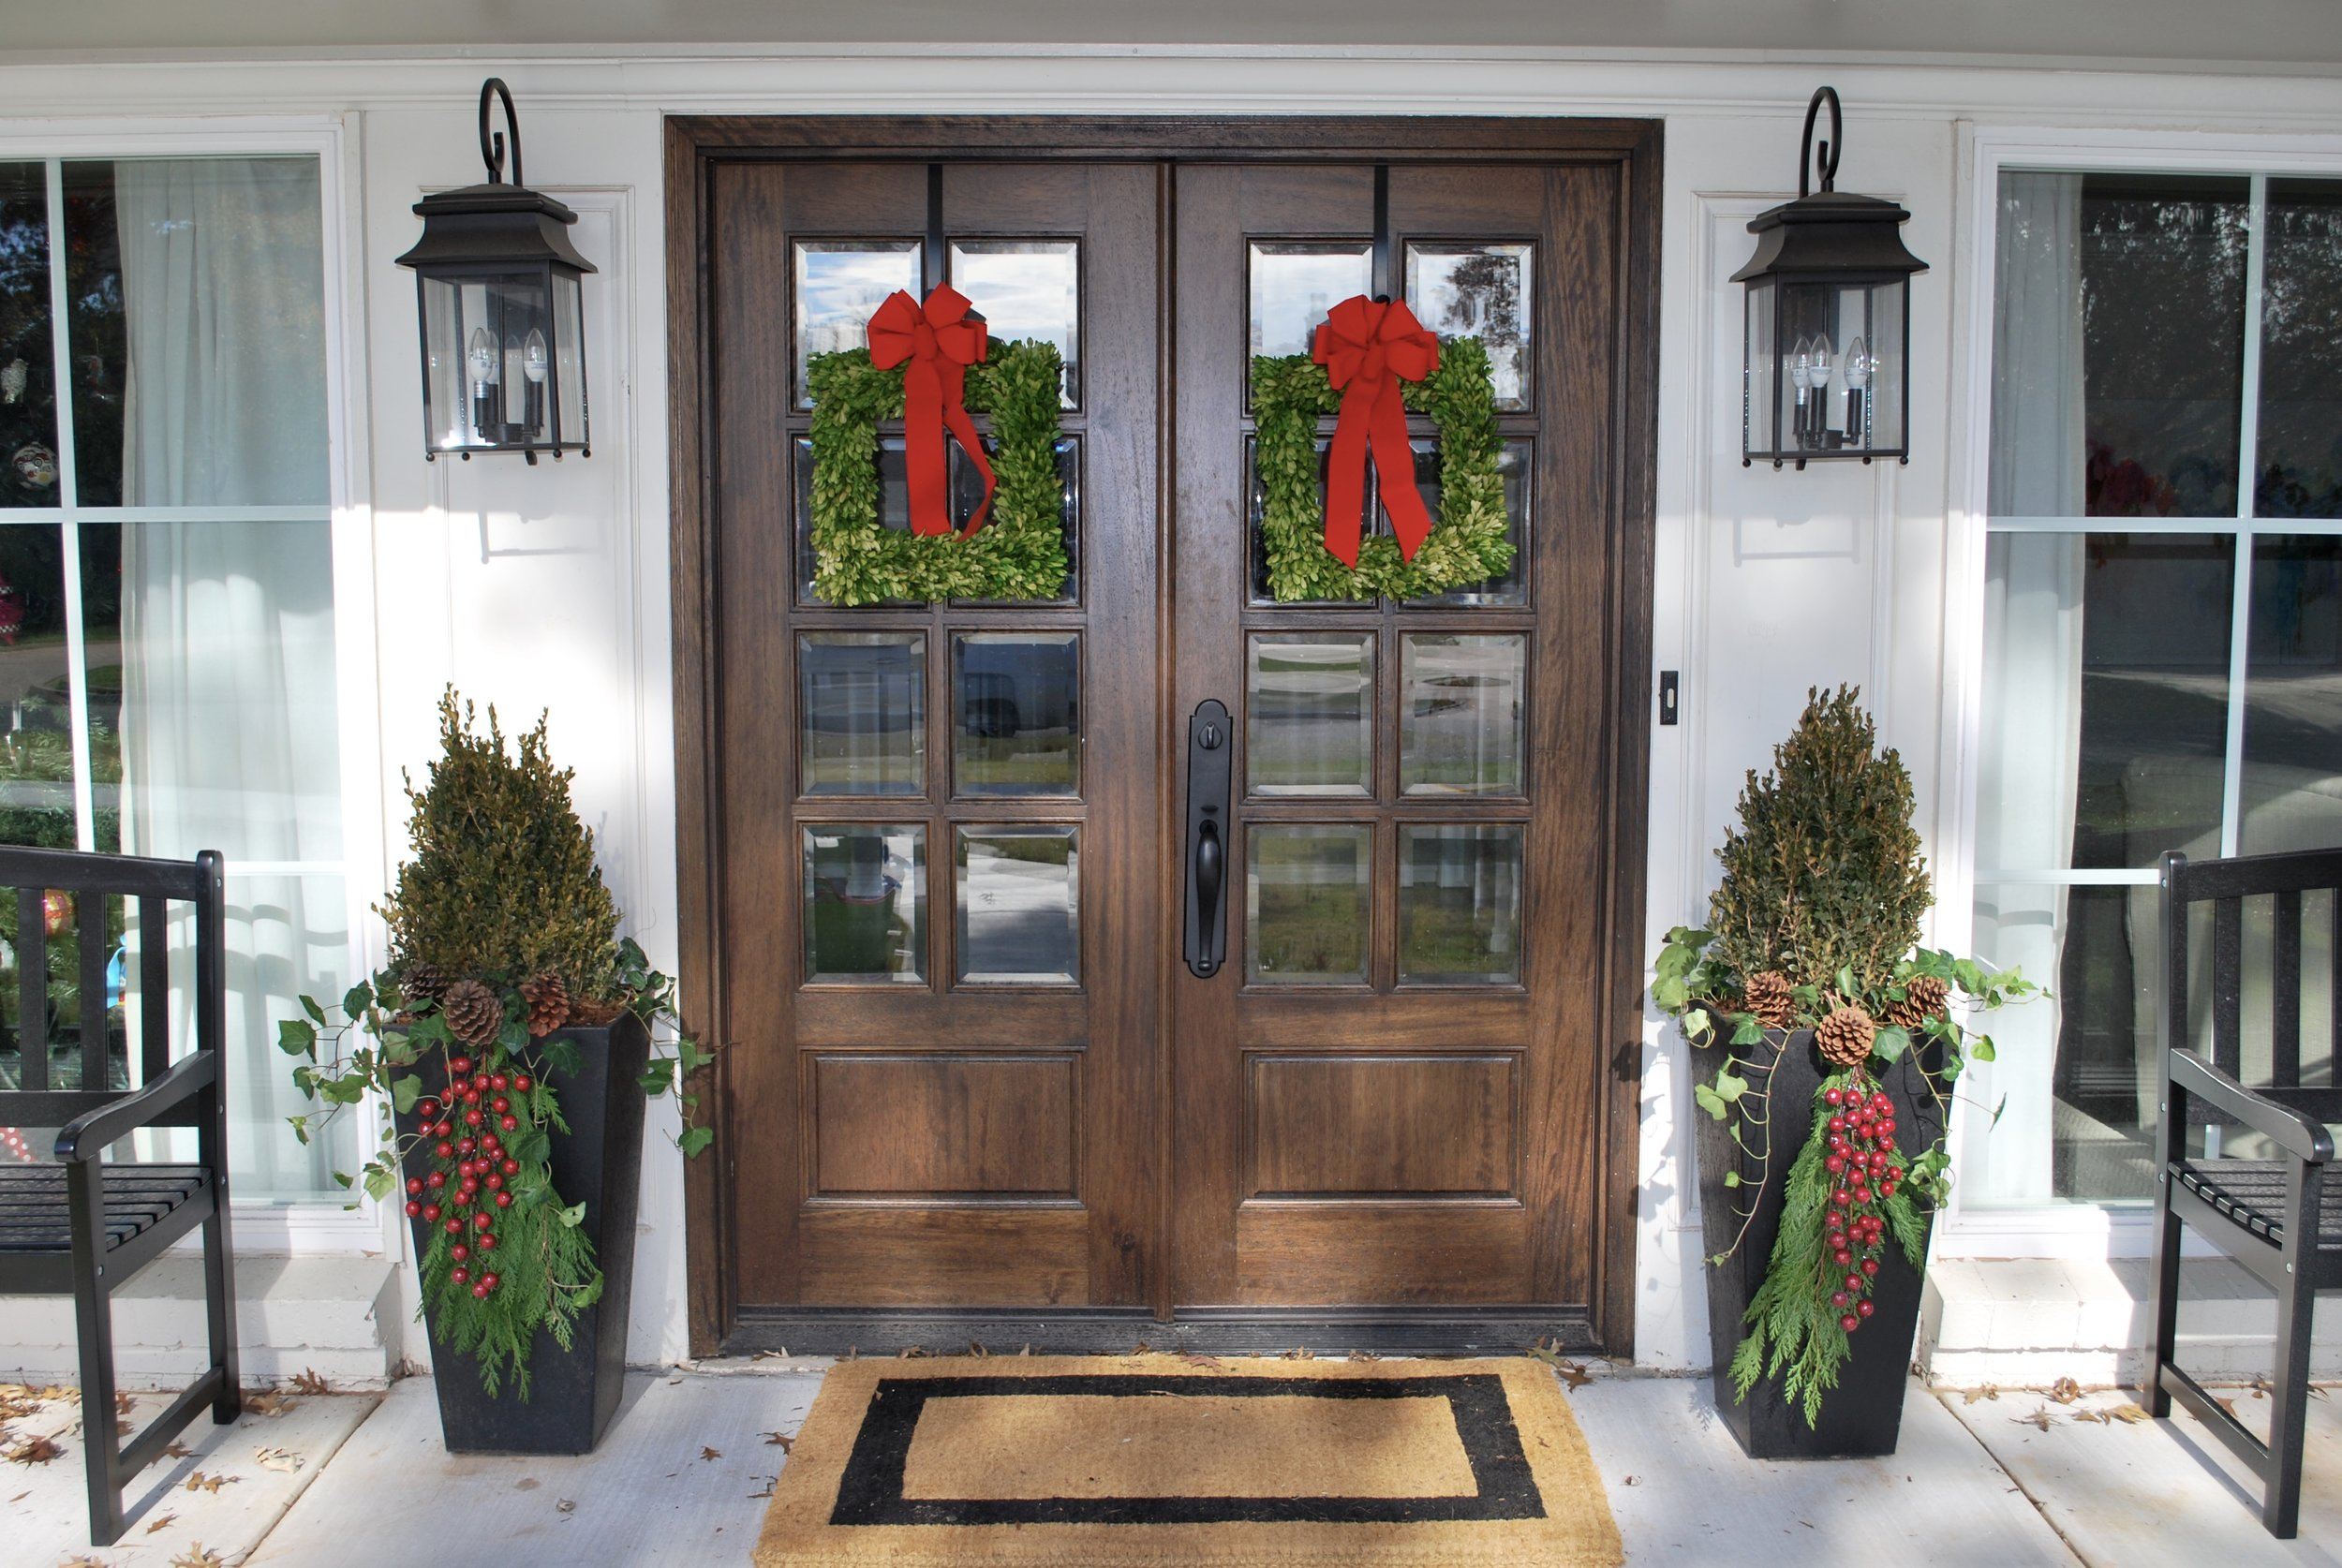 """Let Adorn Help You   Oh, hello holiday season! You are right around the corner. It may be the most wonderful time of the year, but it's also the busiest. Let our elves """"adorn"""" your front porch or store front with holiday curb appeal and mark that task off your list. Think of it as an early gift to yourself!"""